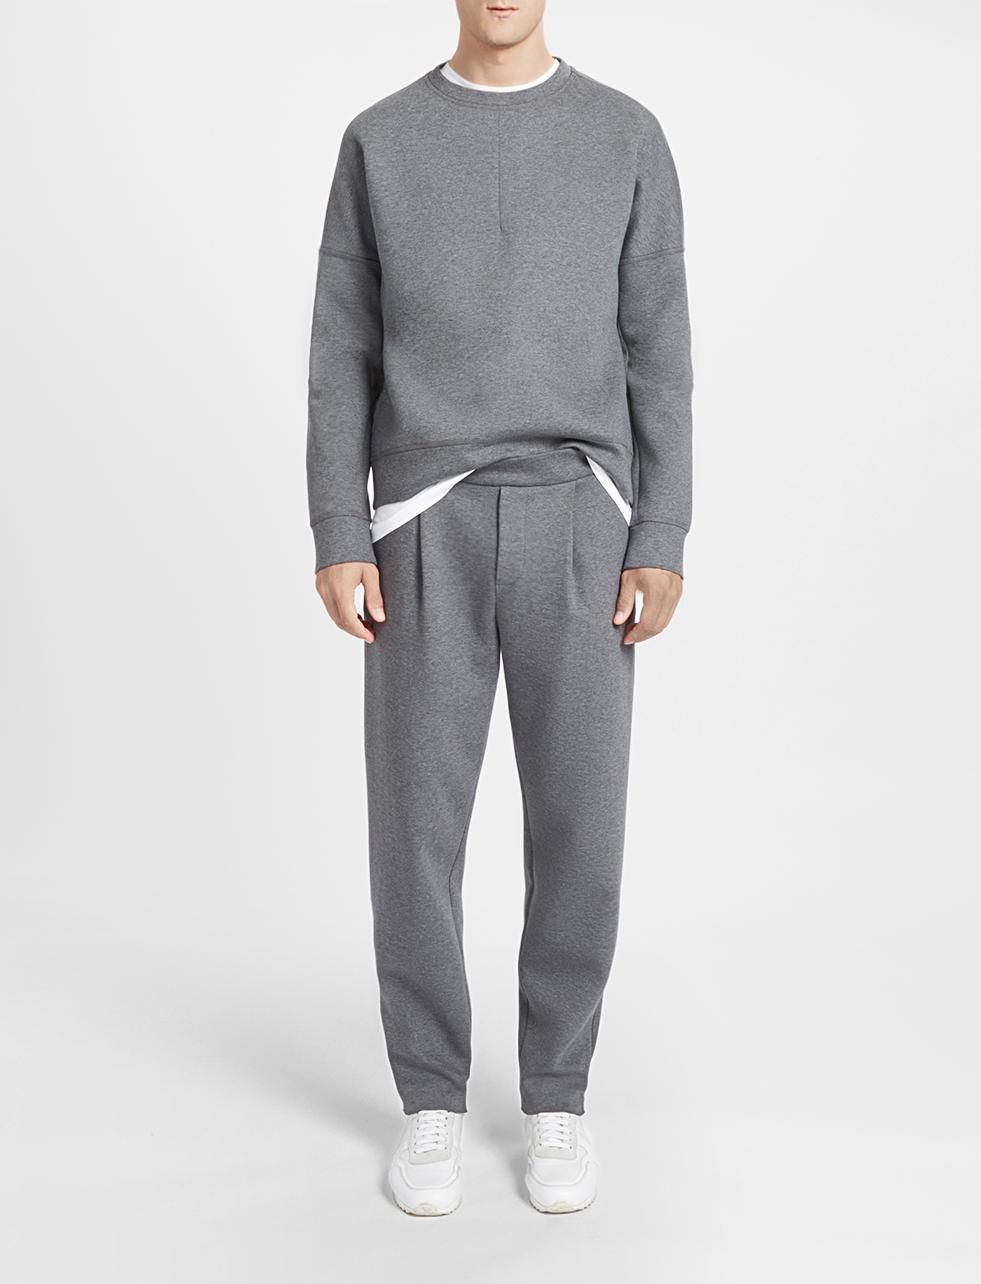 Normcore Clothing Brands